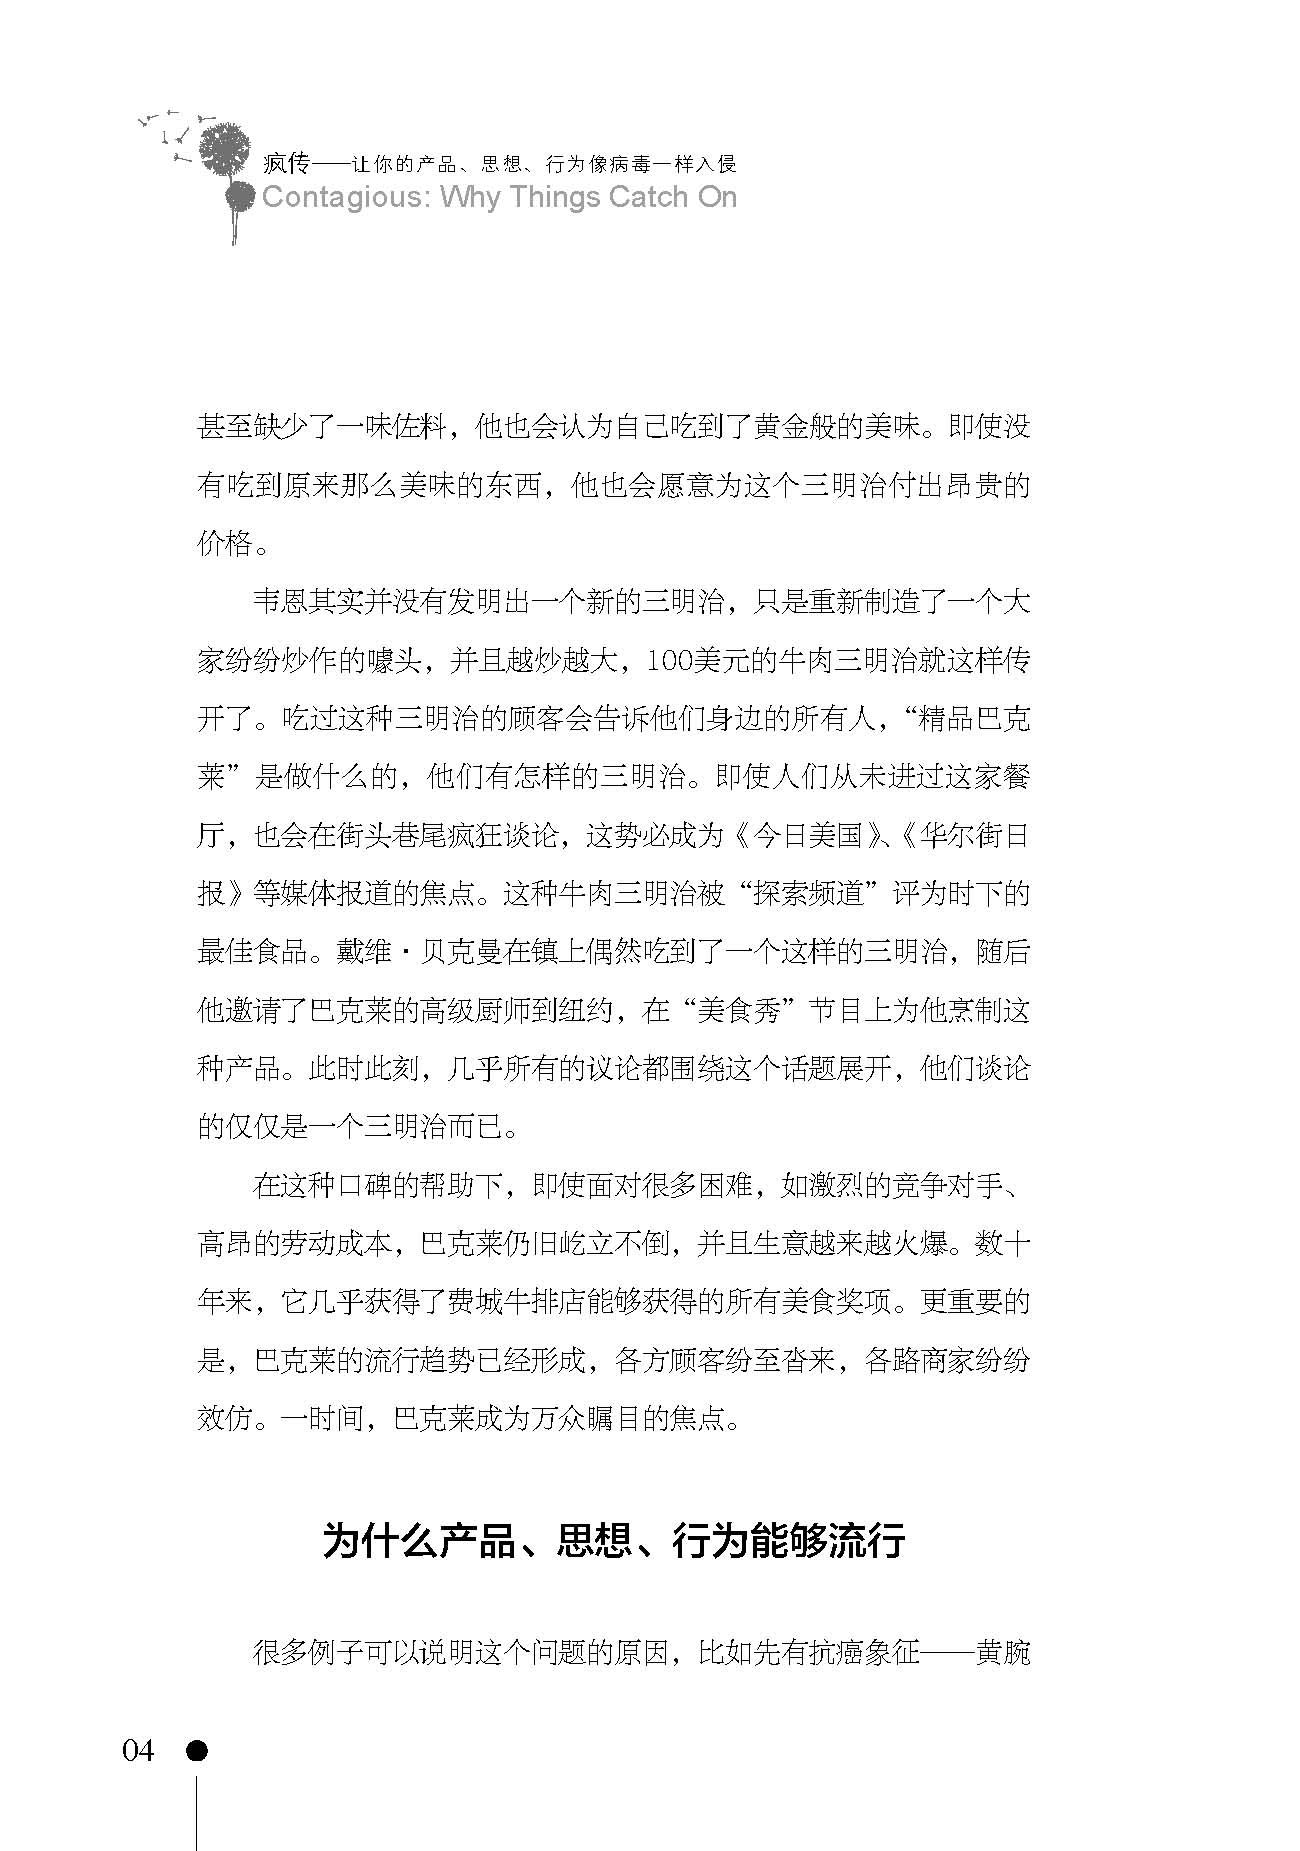 Contagious: Why Things Catch On(Chinese Edition): [ MEI